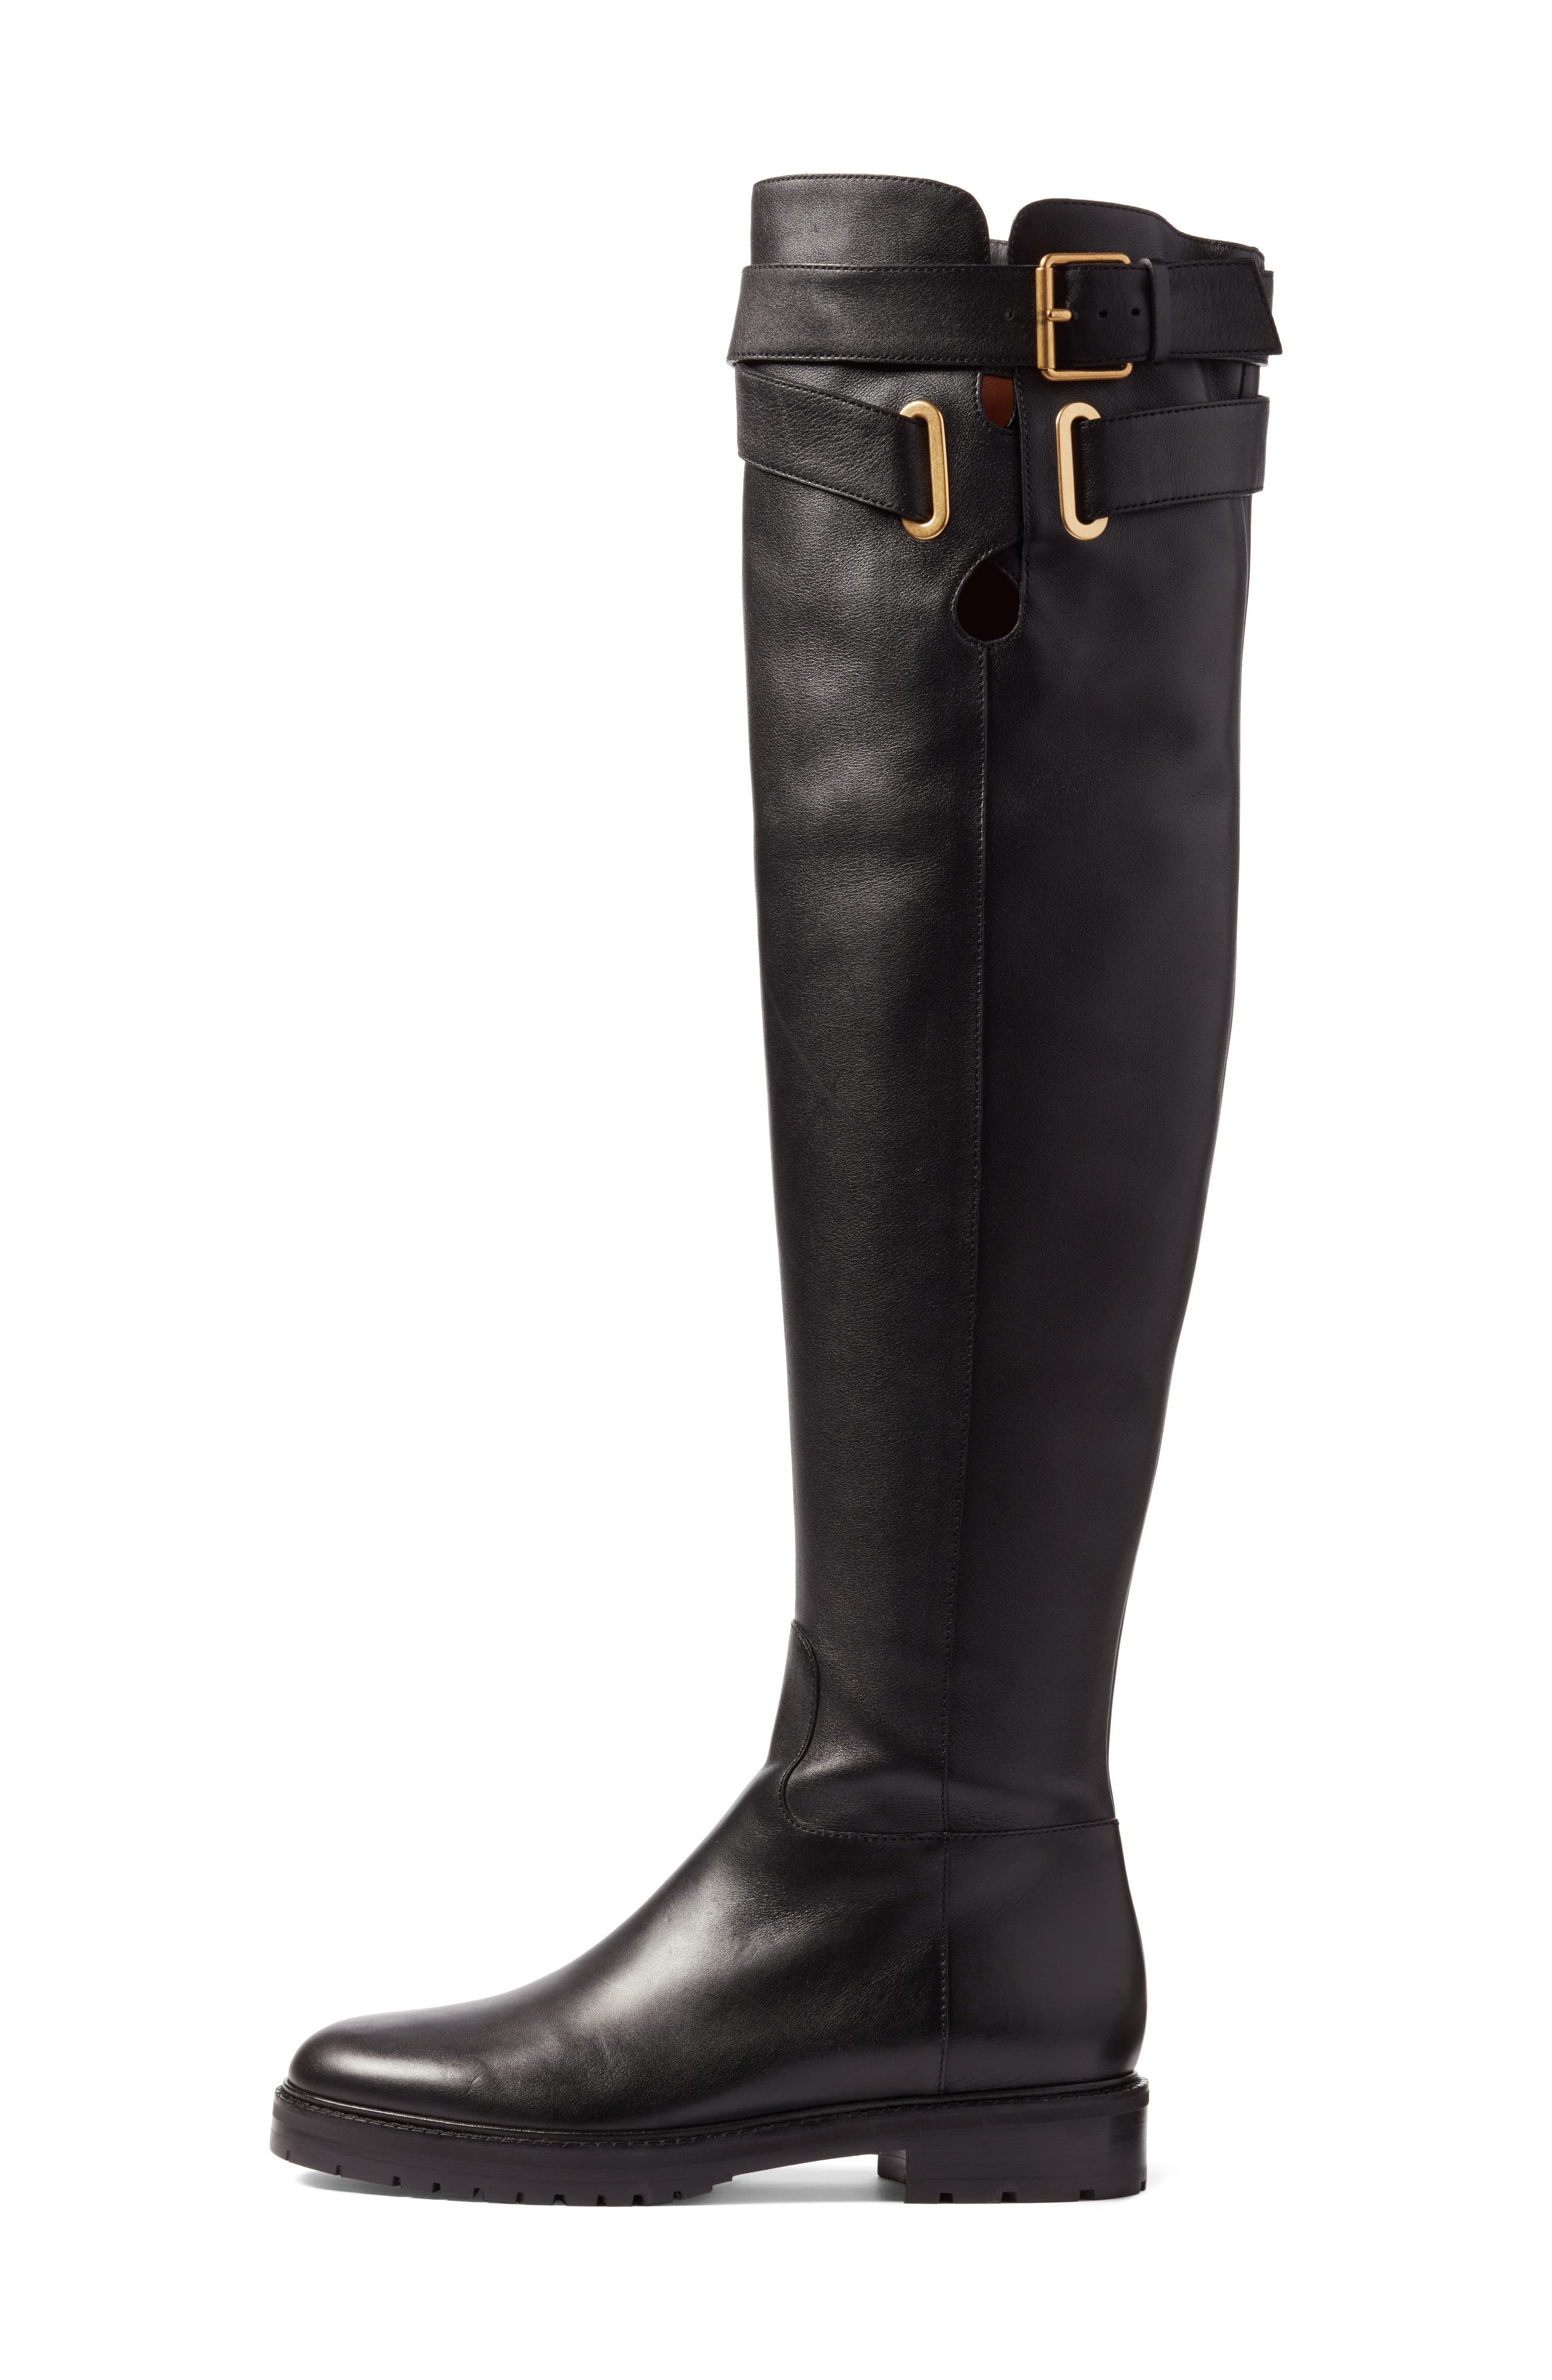 Bowrap Over the Knee Boot,                             Alternate thumbnail 3, color,                             001